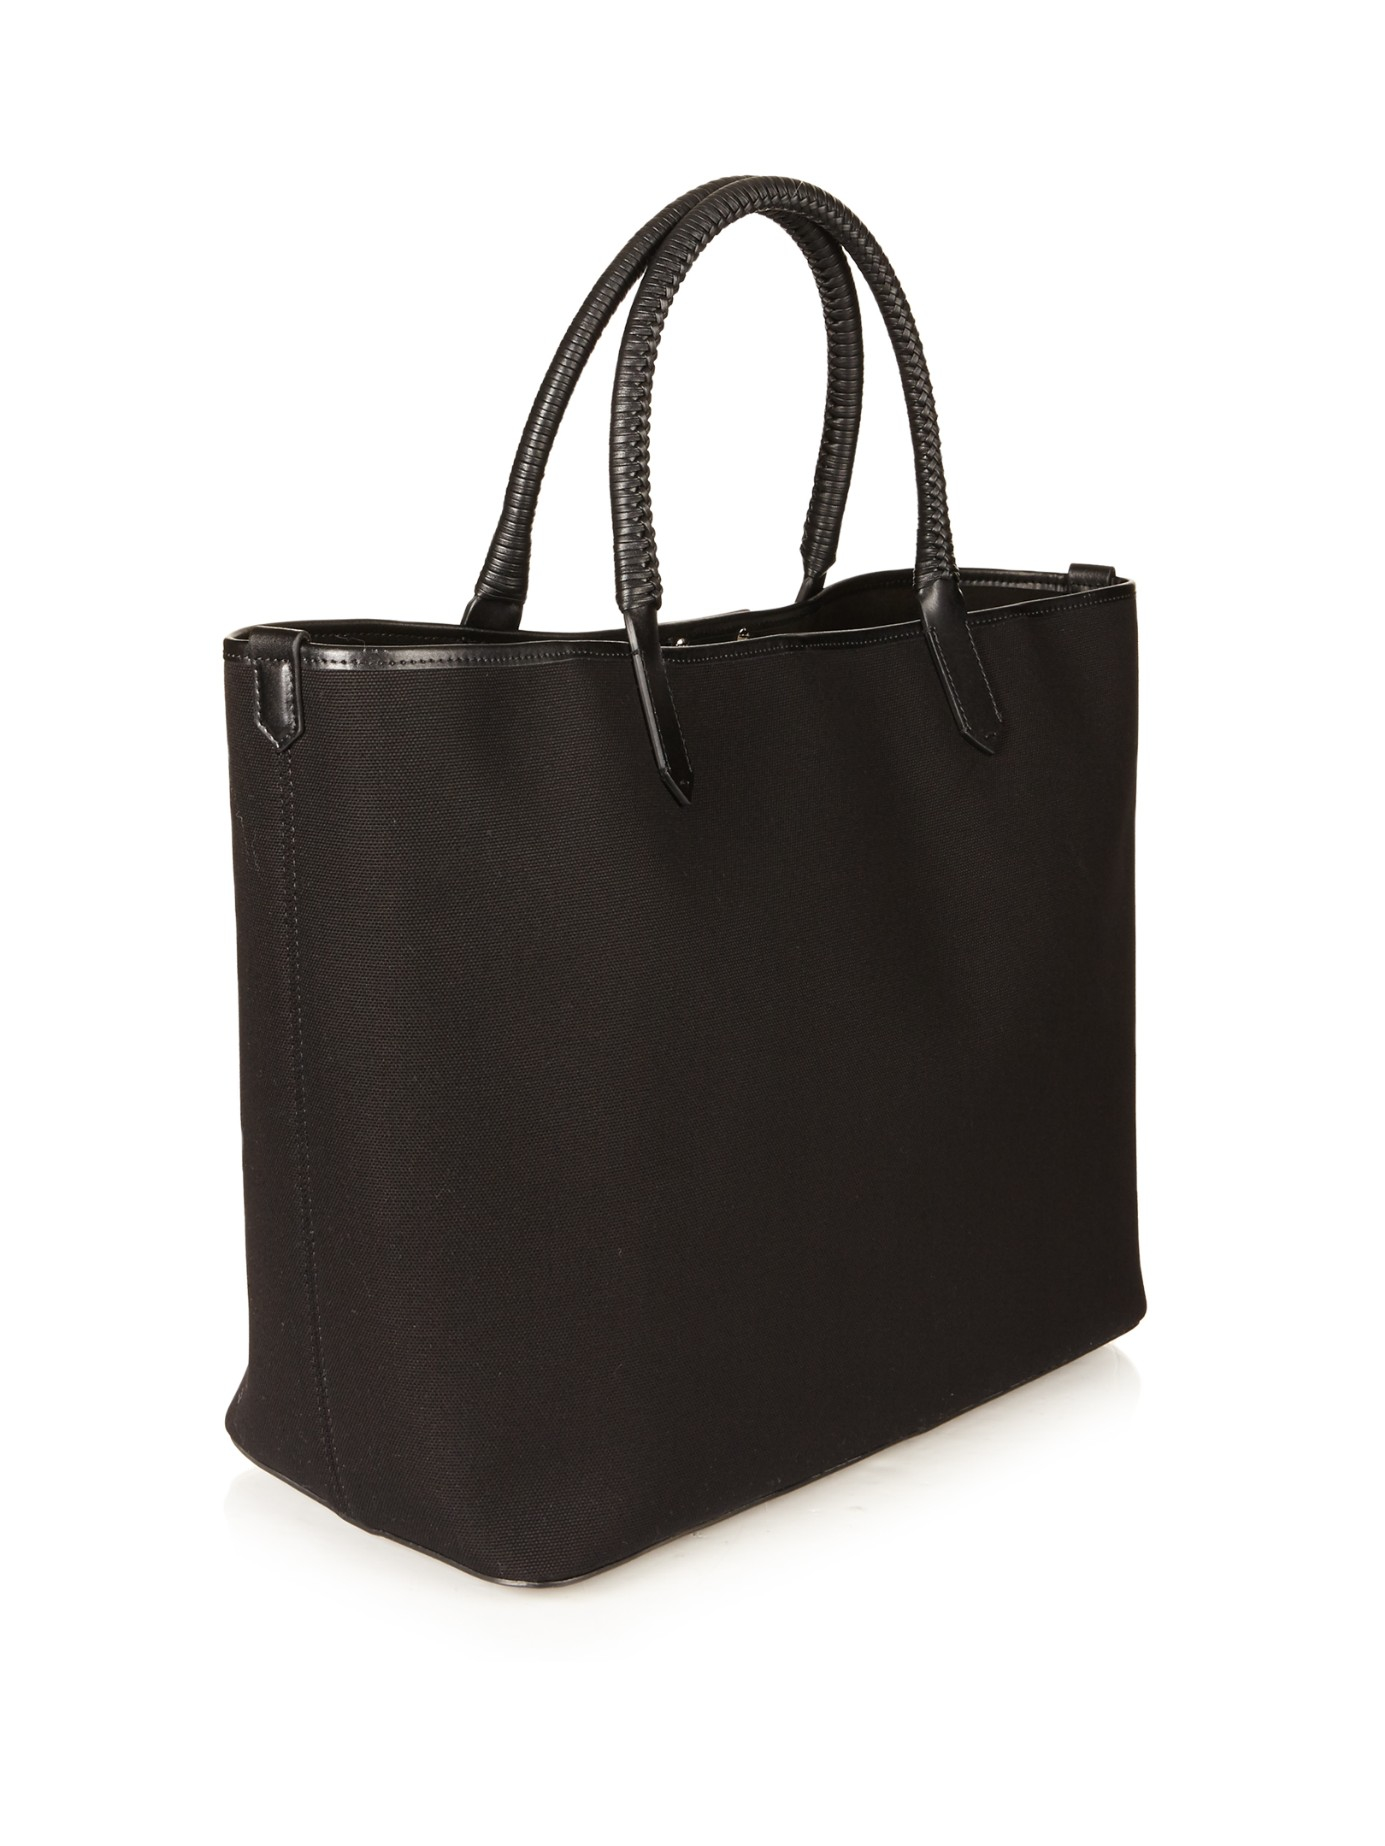 1d0228361245 Givenchy Antigona Large Canvas Tote in Black - Lyst